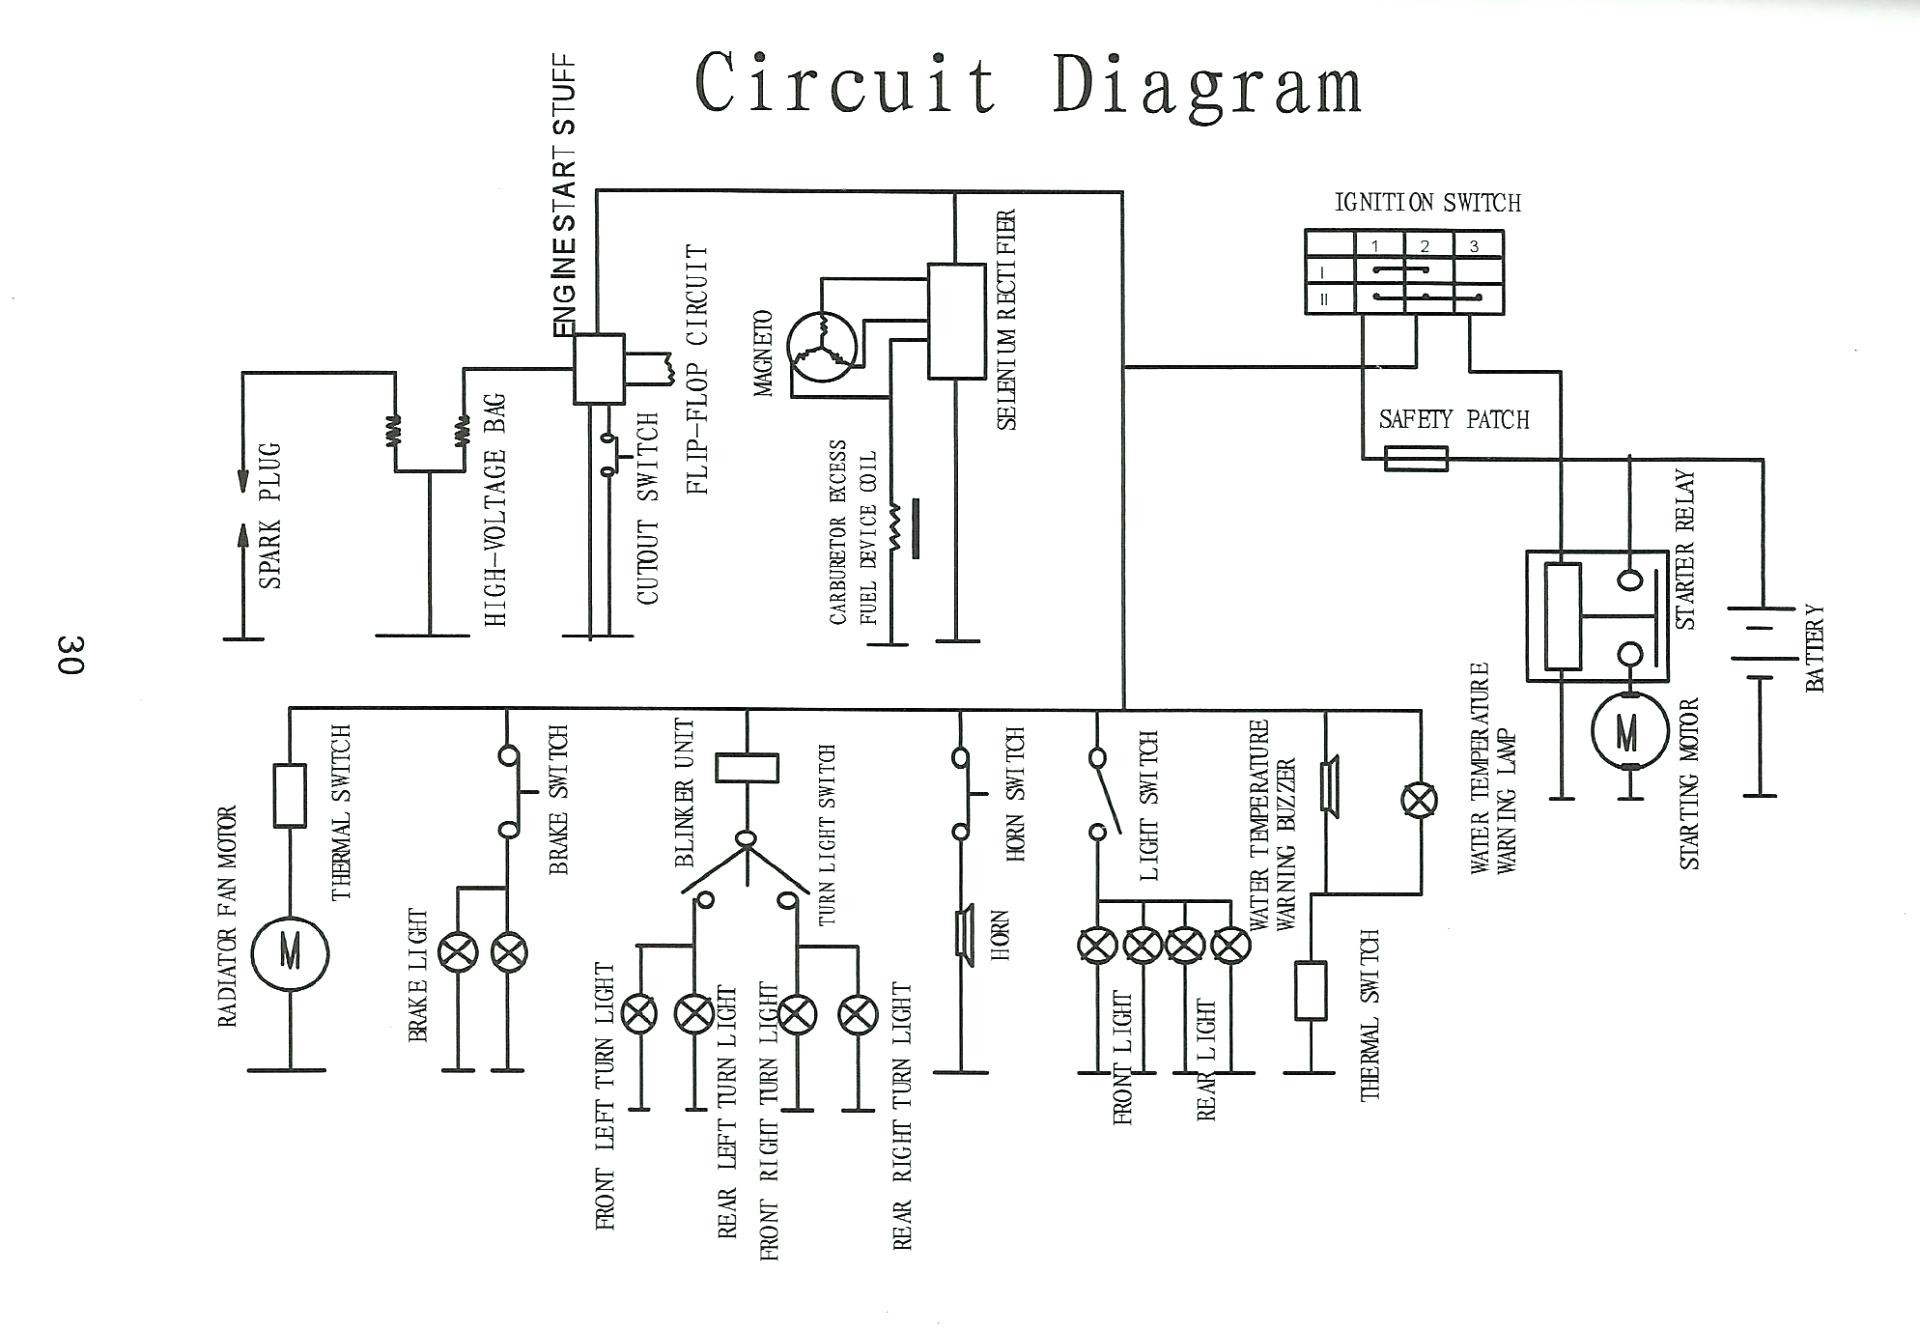 Wiring Diagram Perko Battery Switch Wiring Diagram Darren Criss